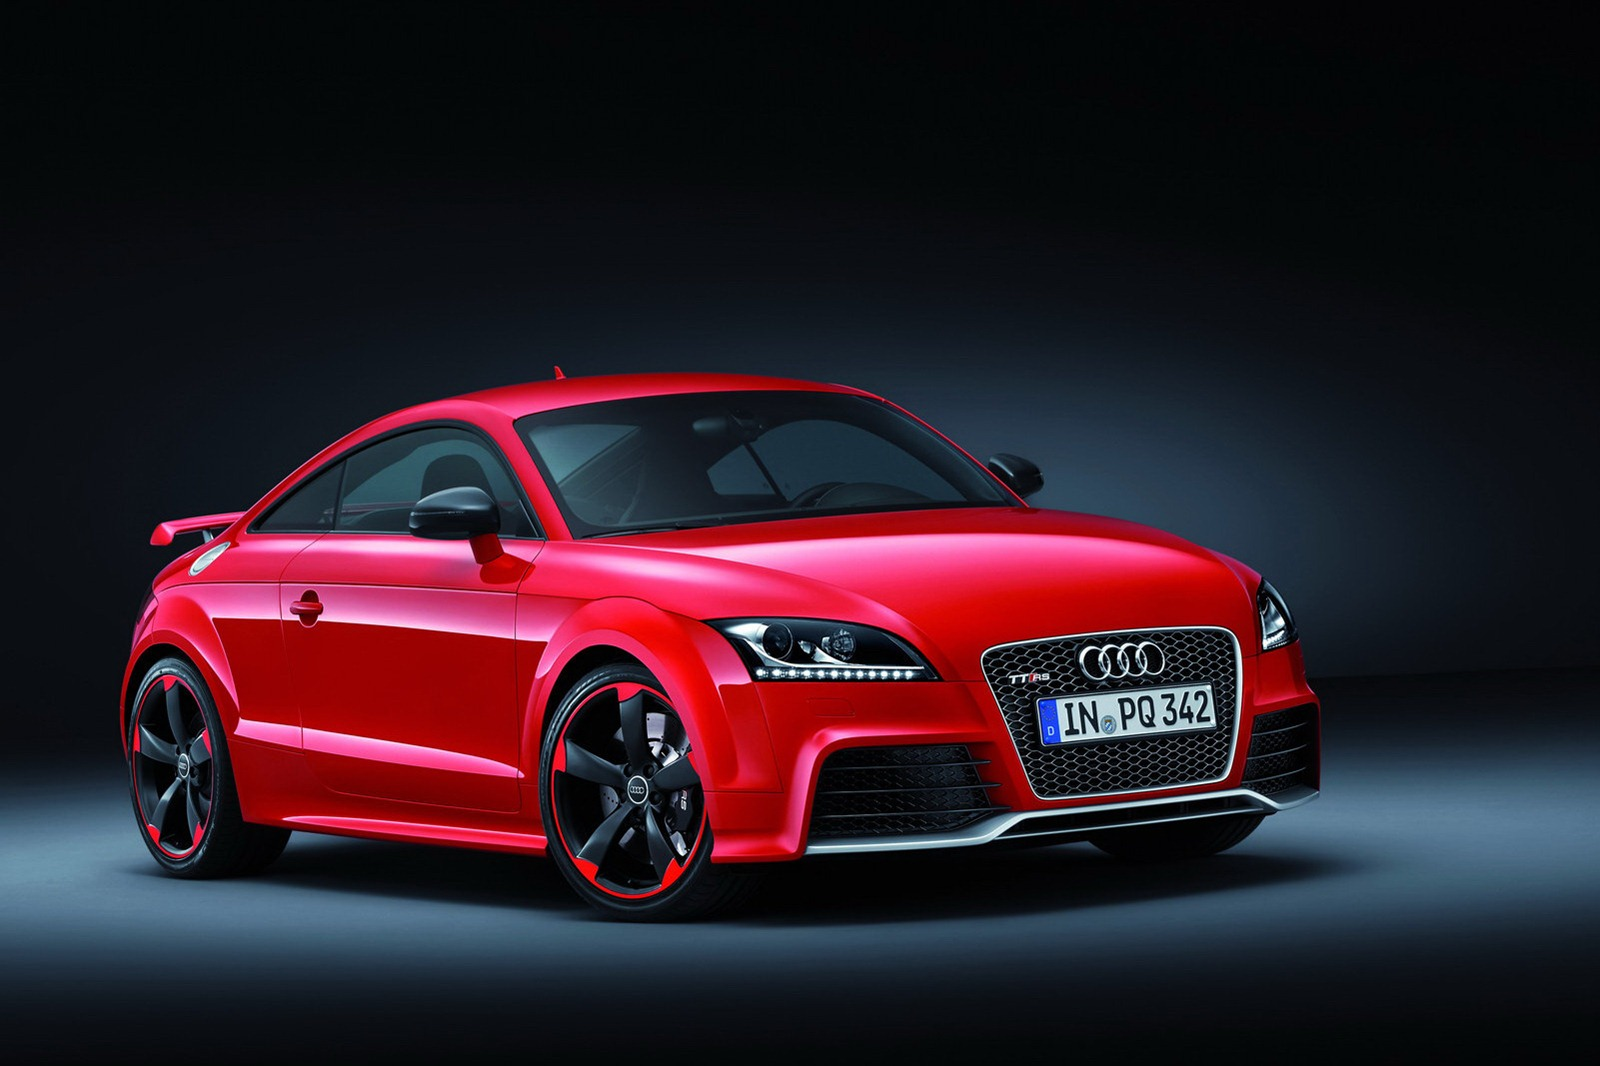 Audi audi rs tt : Audi TT RS Plus Has 360 HP. Pricing Announced - autoevolution